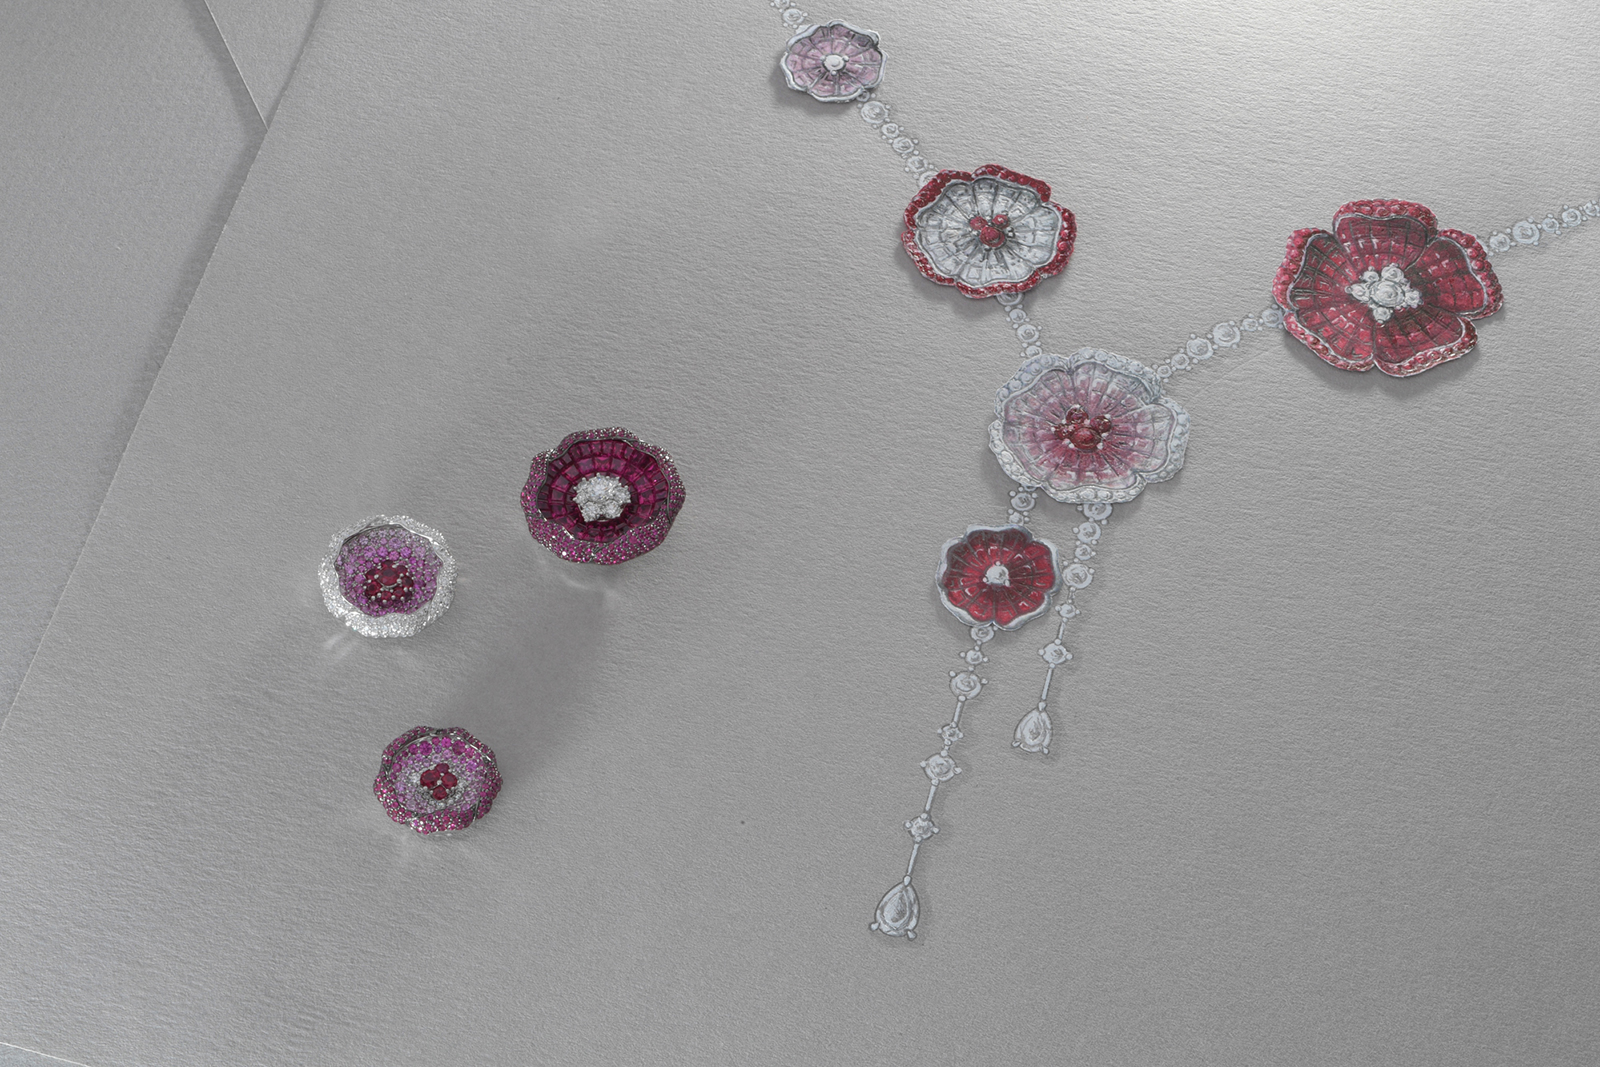 Stenzhorn Sakura necklace with rubies, pink sapphires and diamonds